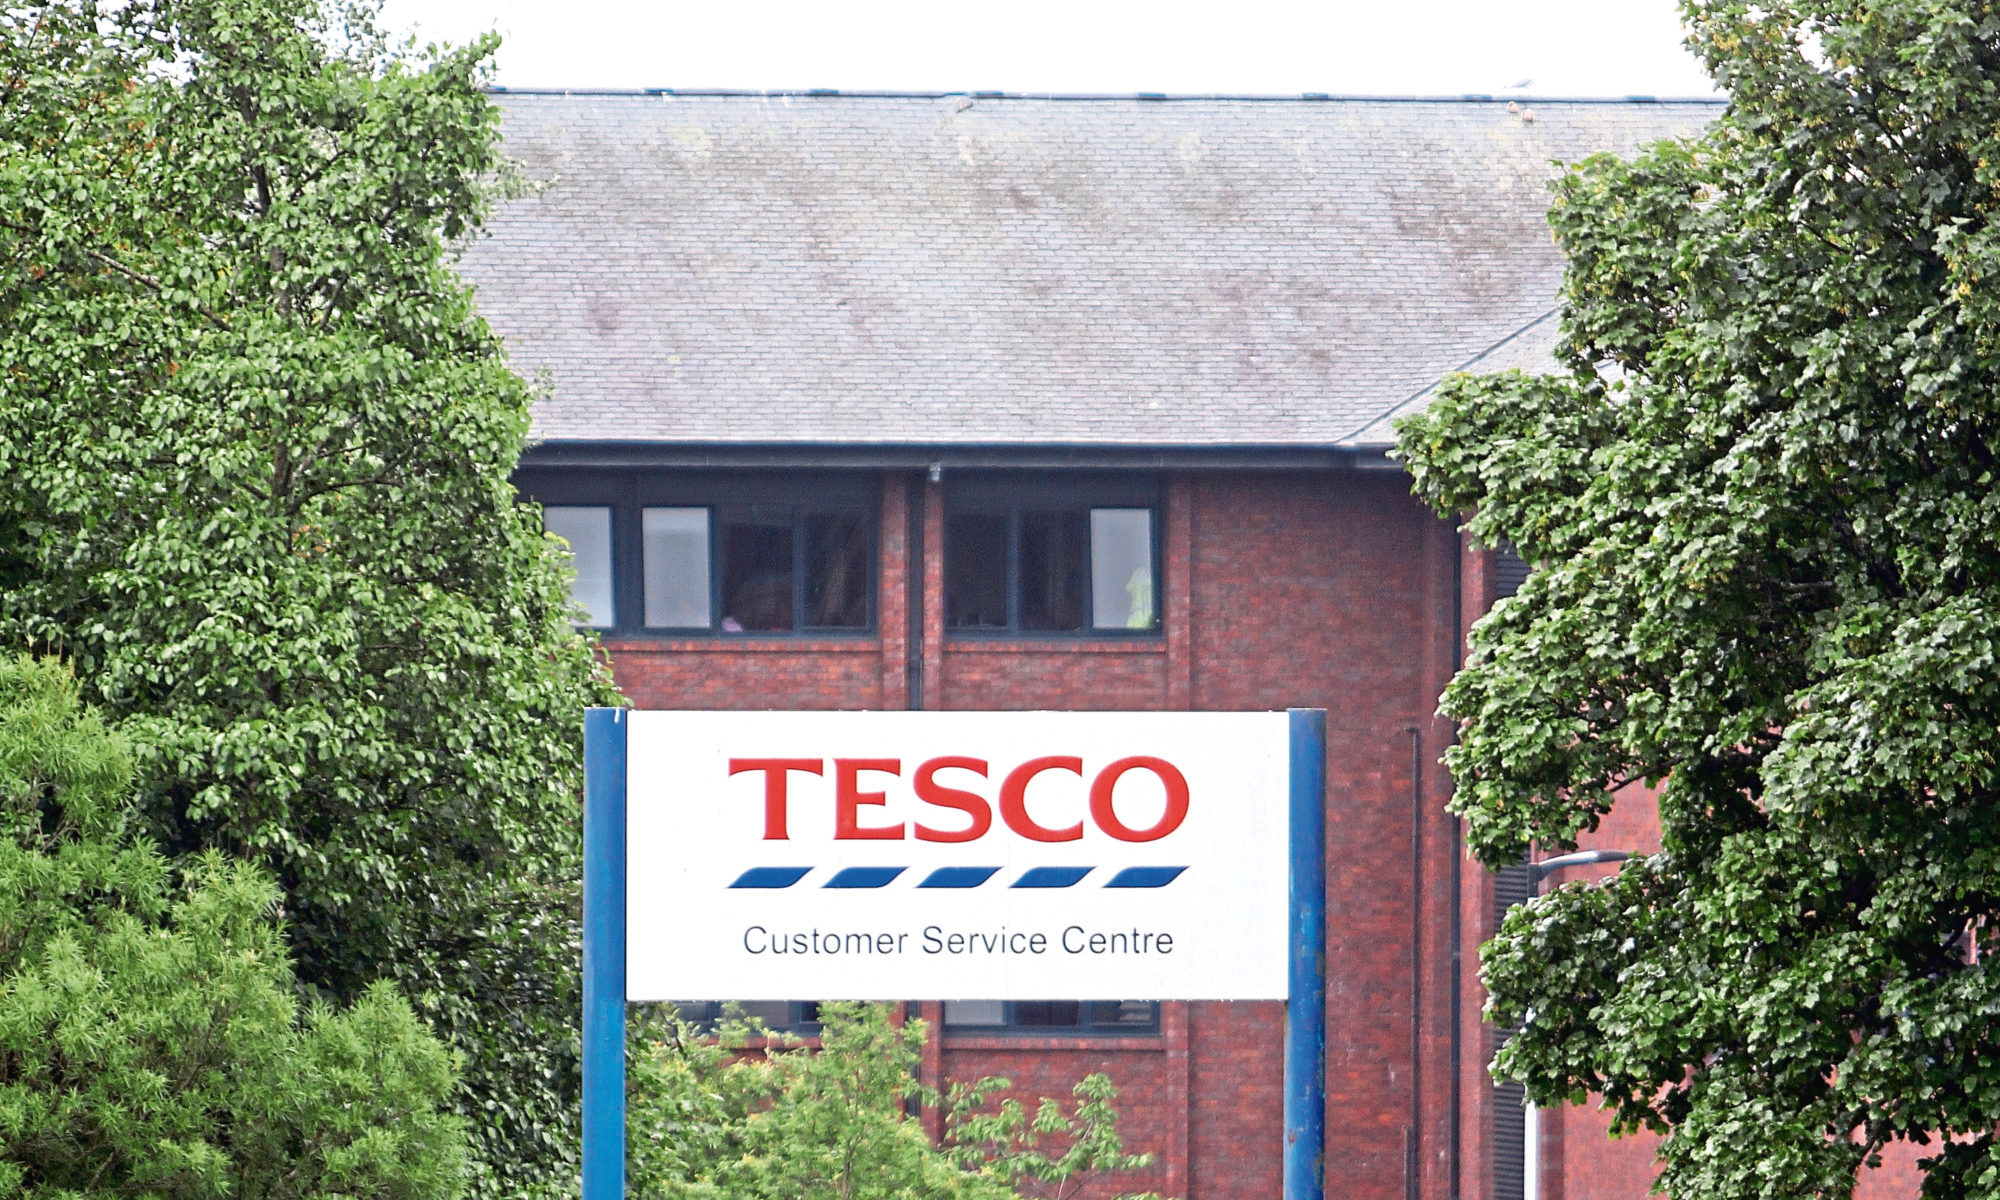 Only those with permanent Tesco contracts will receive the bonus